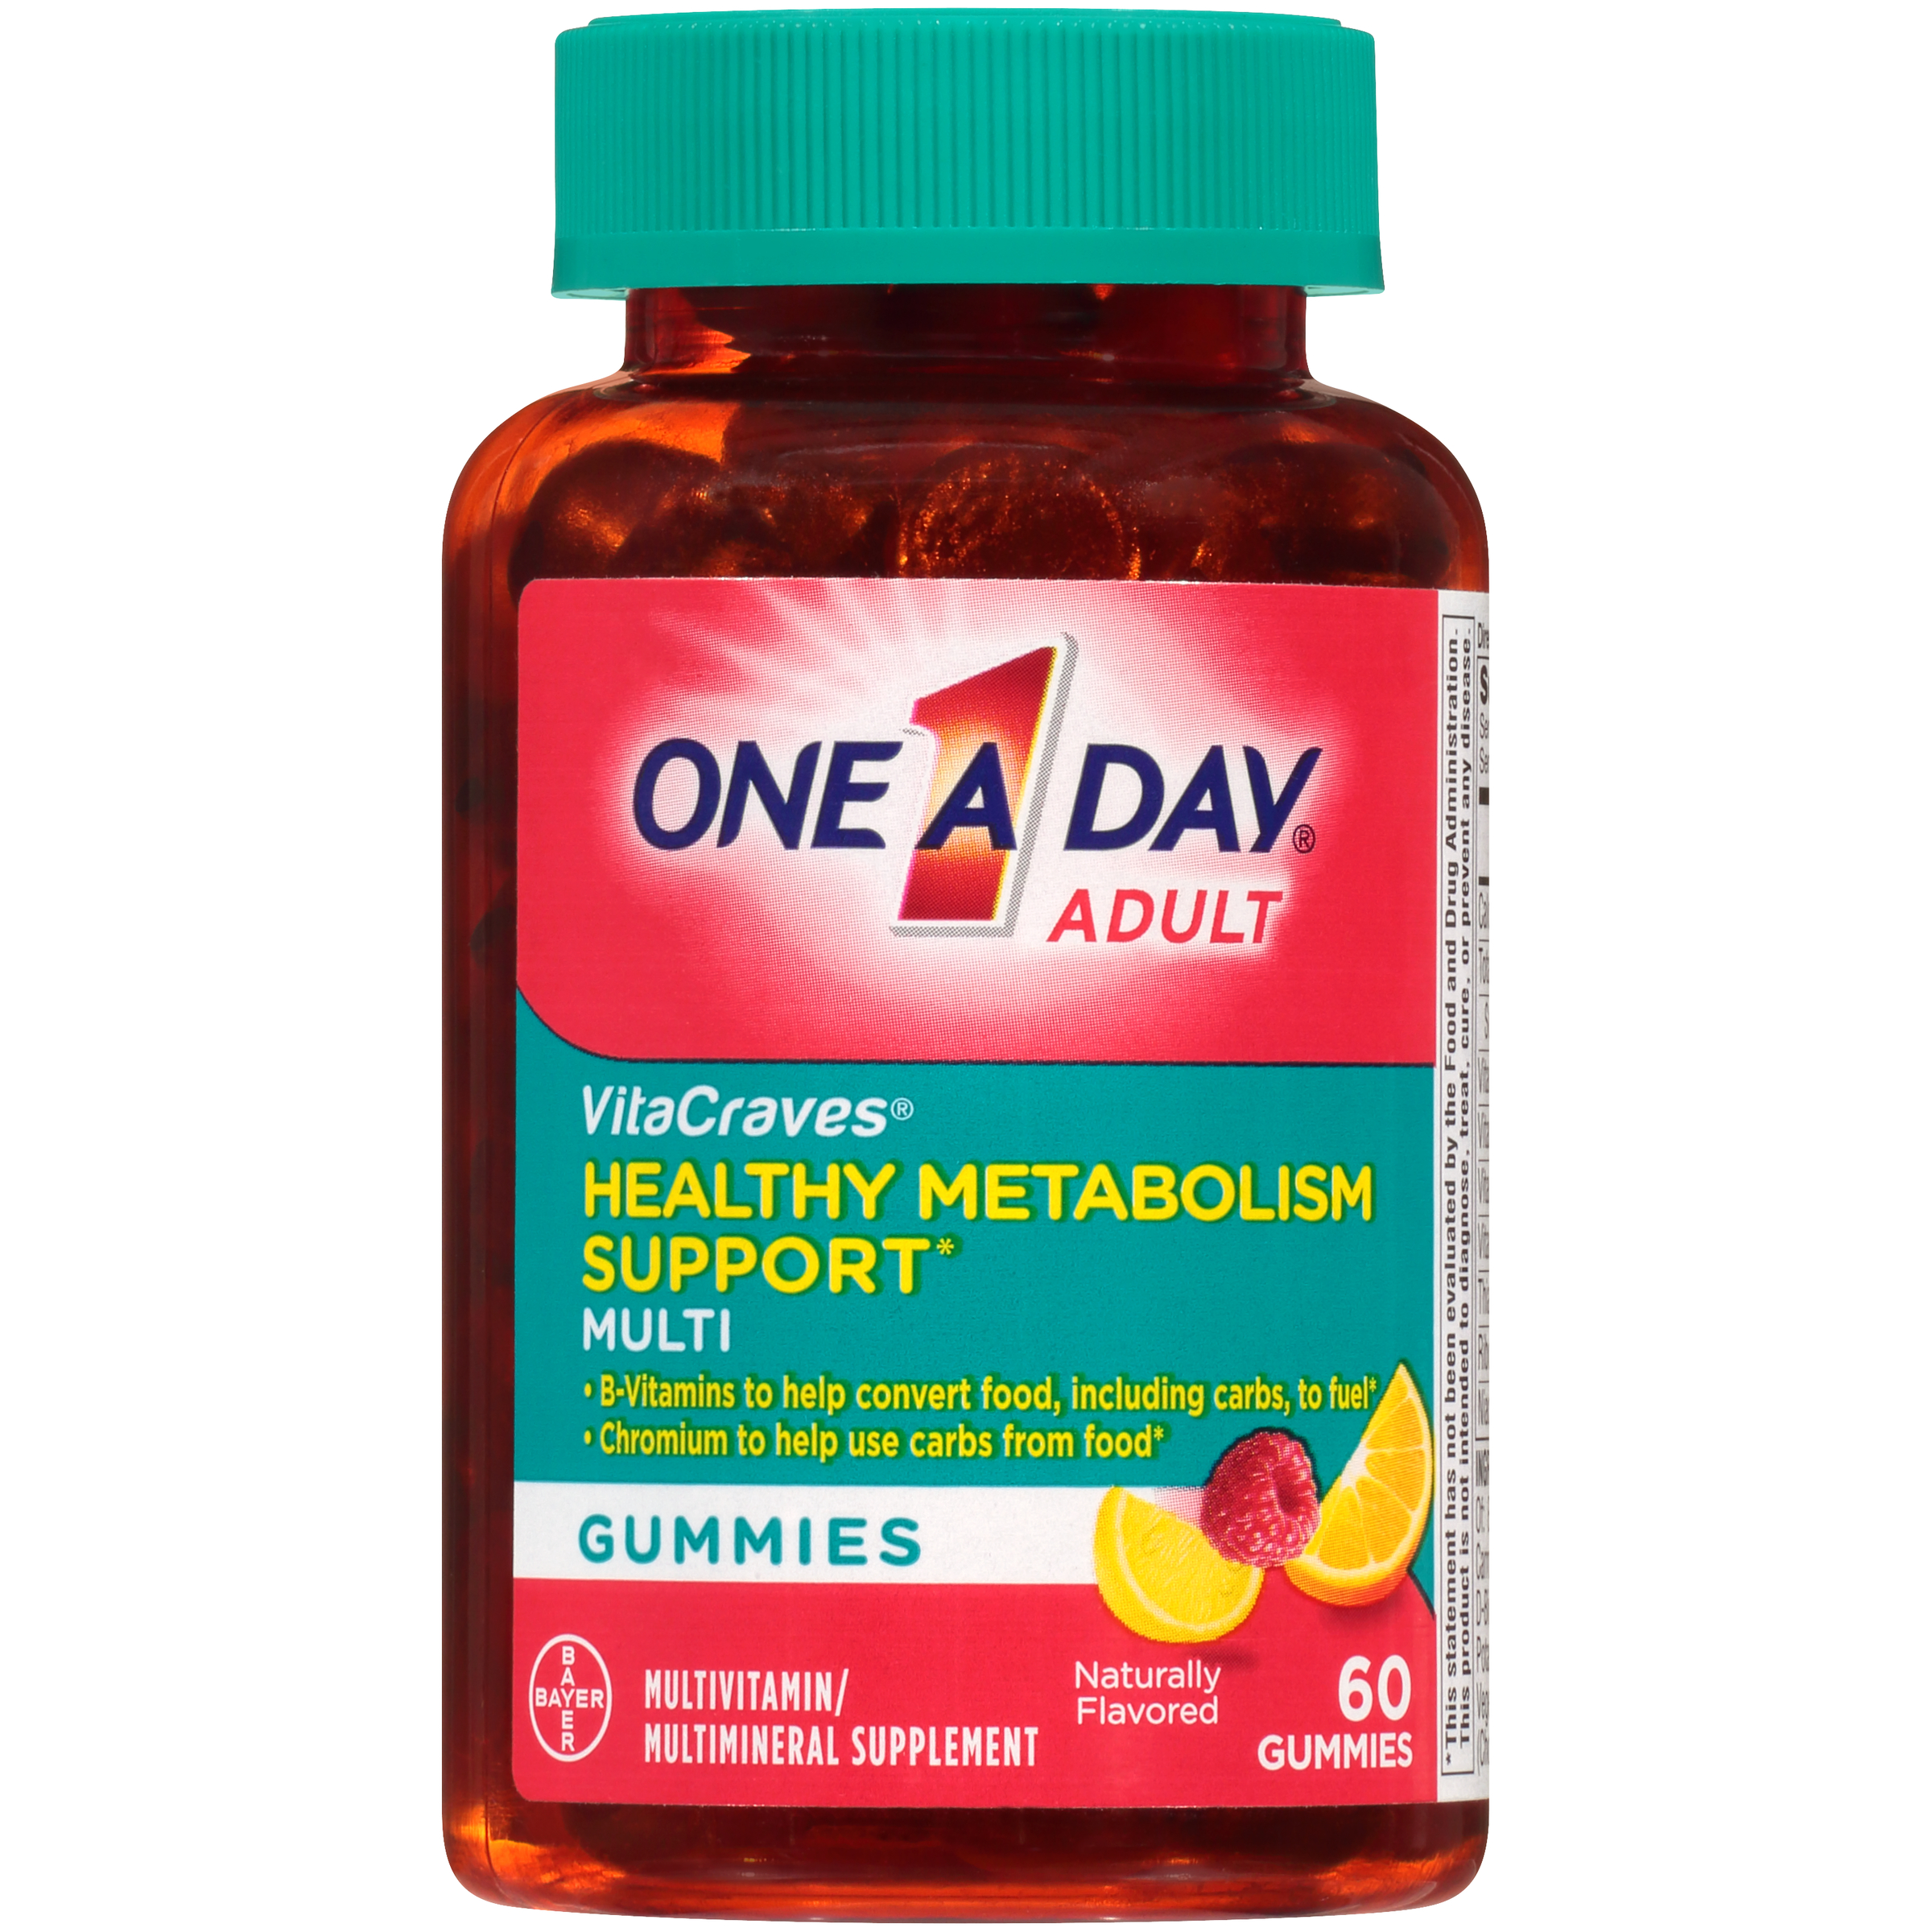 One A Day VitaCraves Metabolism Support Multivitamin Gummy, 60 Count